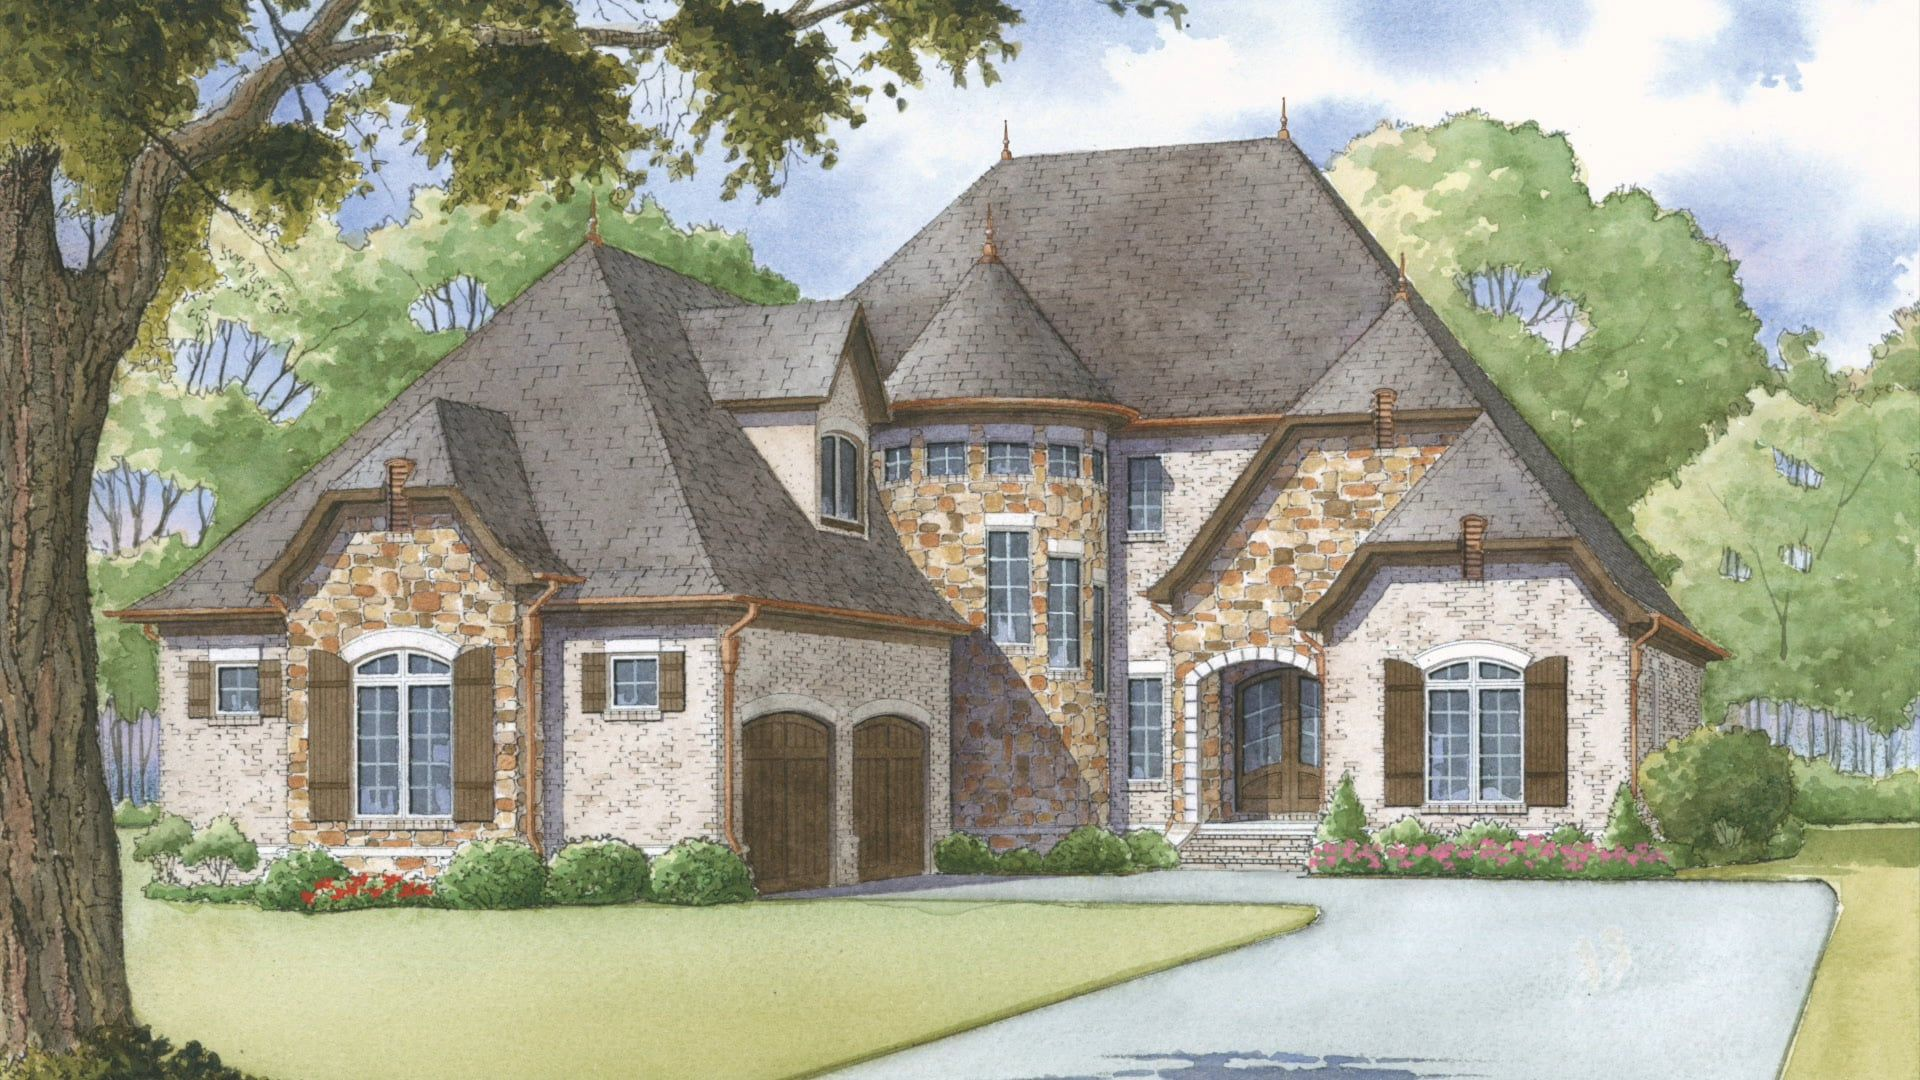 House Plan Men 5000 Ivy Cottage Visual Open House French Country House Plans French Country House Country House Plans